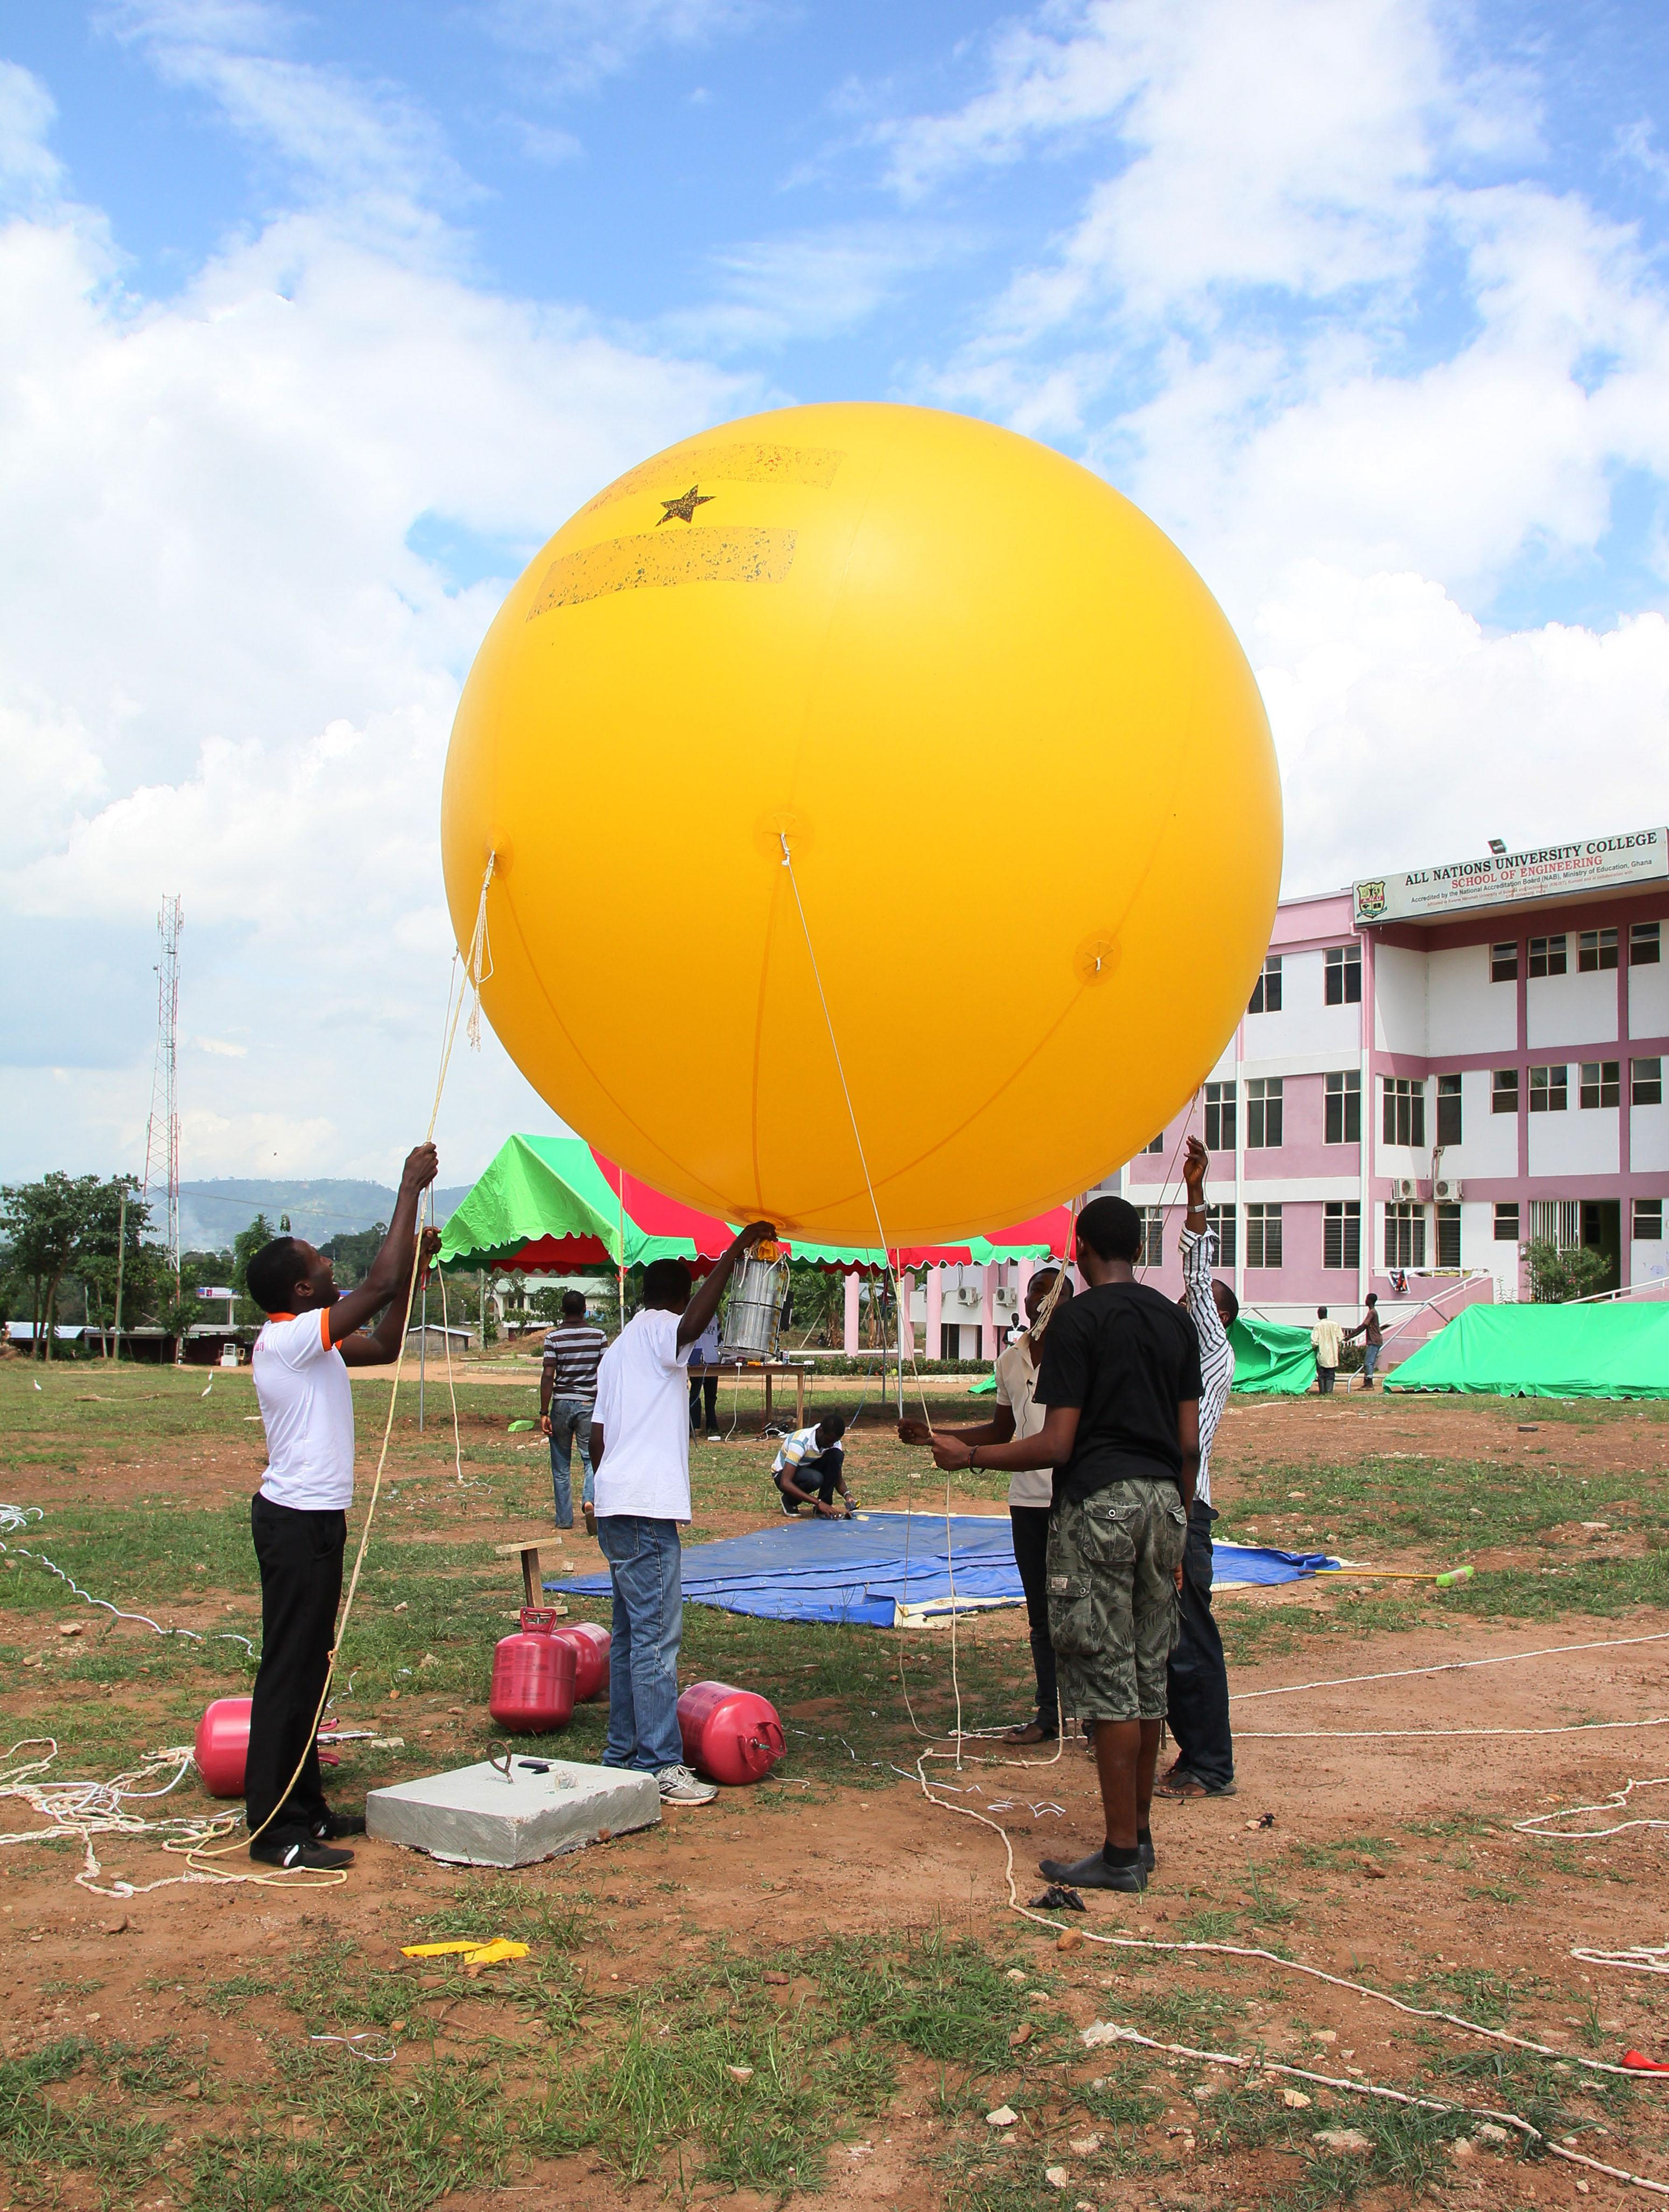 In this Tuesday, May 14, 2013 photo, students prepare the balloon that will be used to conduct a test launch of a Coke-can sized satellite, at All Nations University in Koforidua, Ghana. Ghanaian college students plan Wednesday to launch a model of a satellite the size of a Coke can 200 yards (meters) into the air. Organizers hope that it will be the start of this West African country's space program.(AP Photo/Christian Thompson)